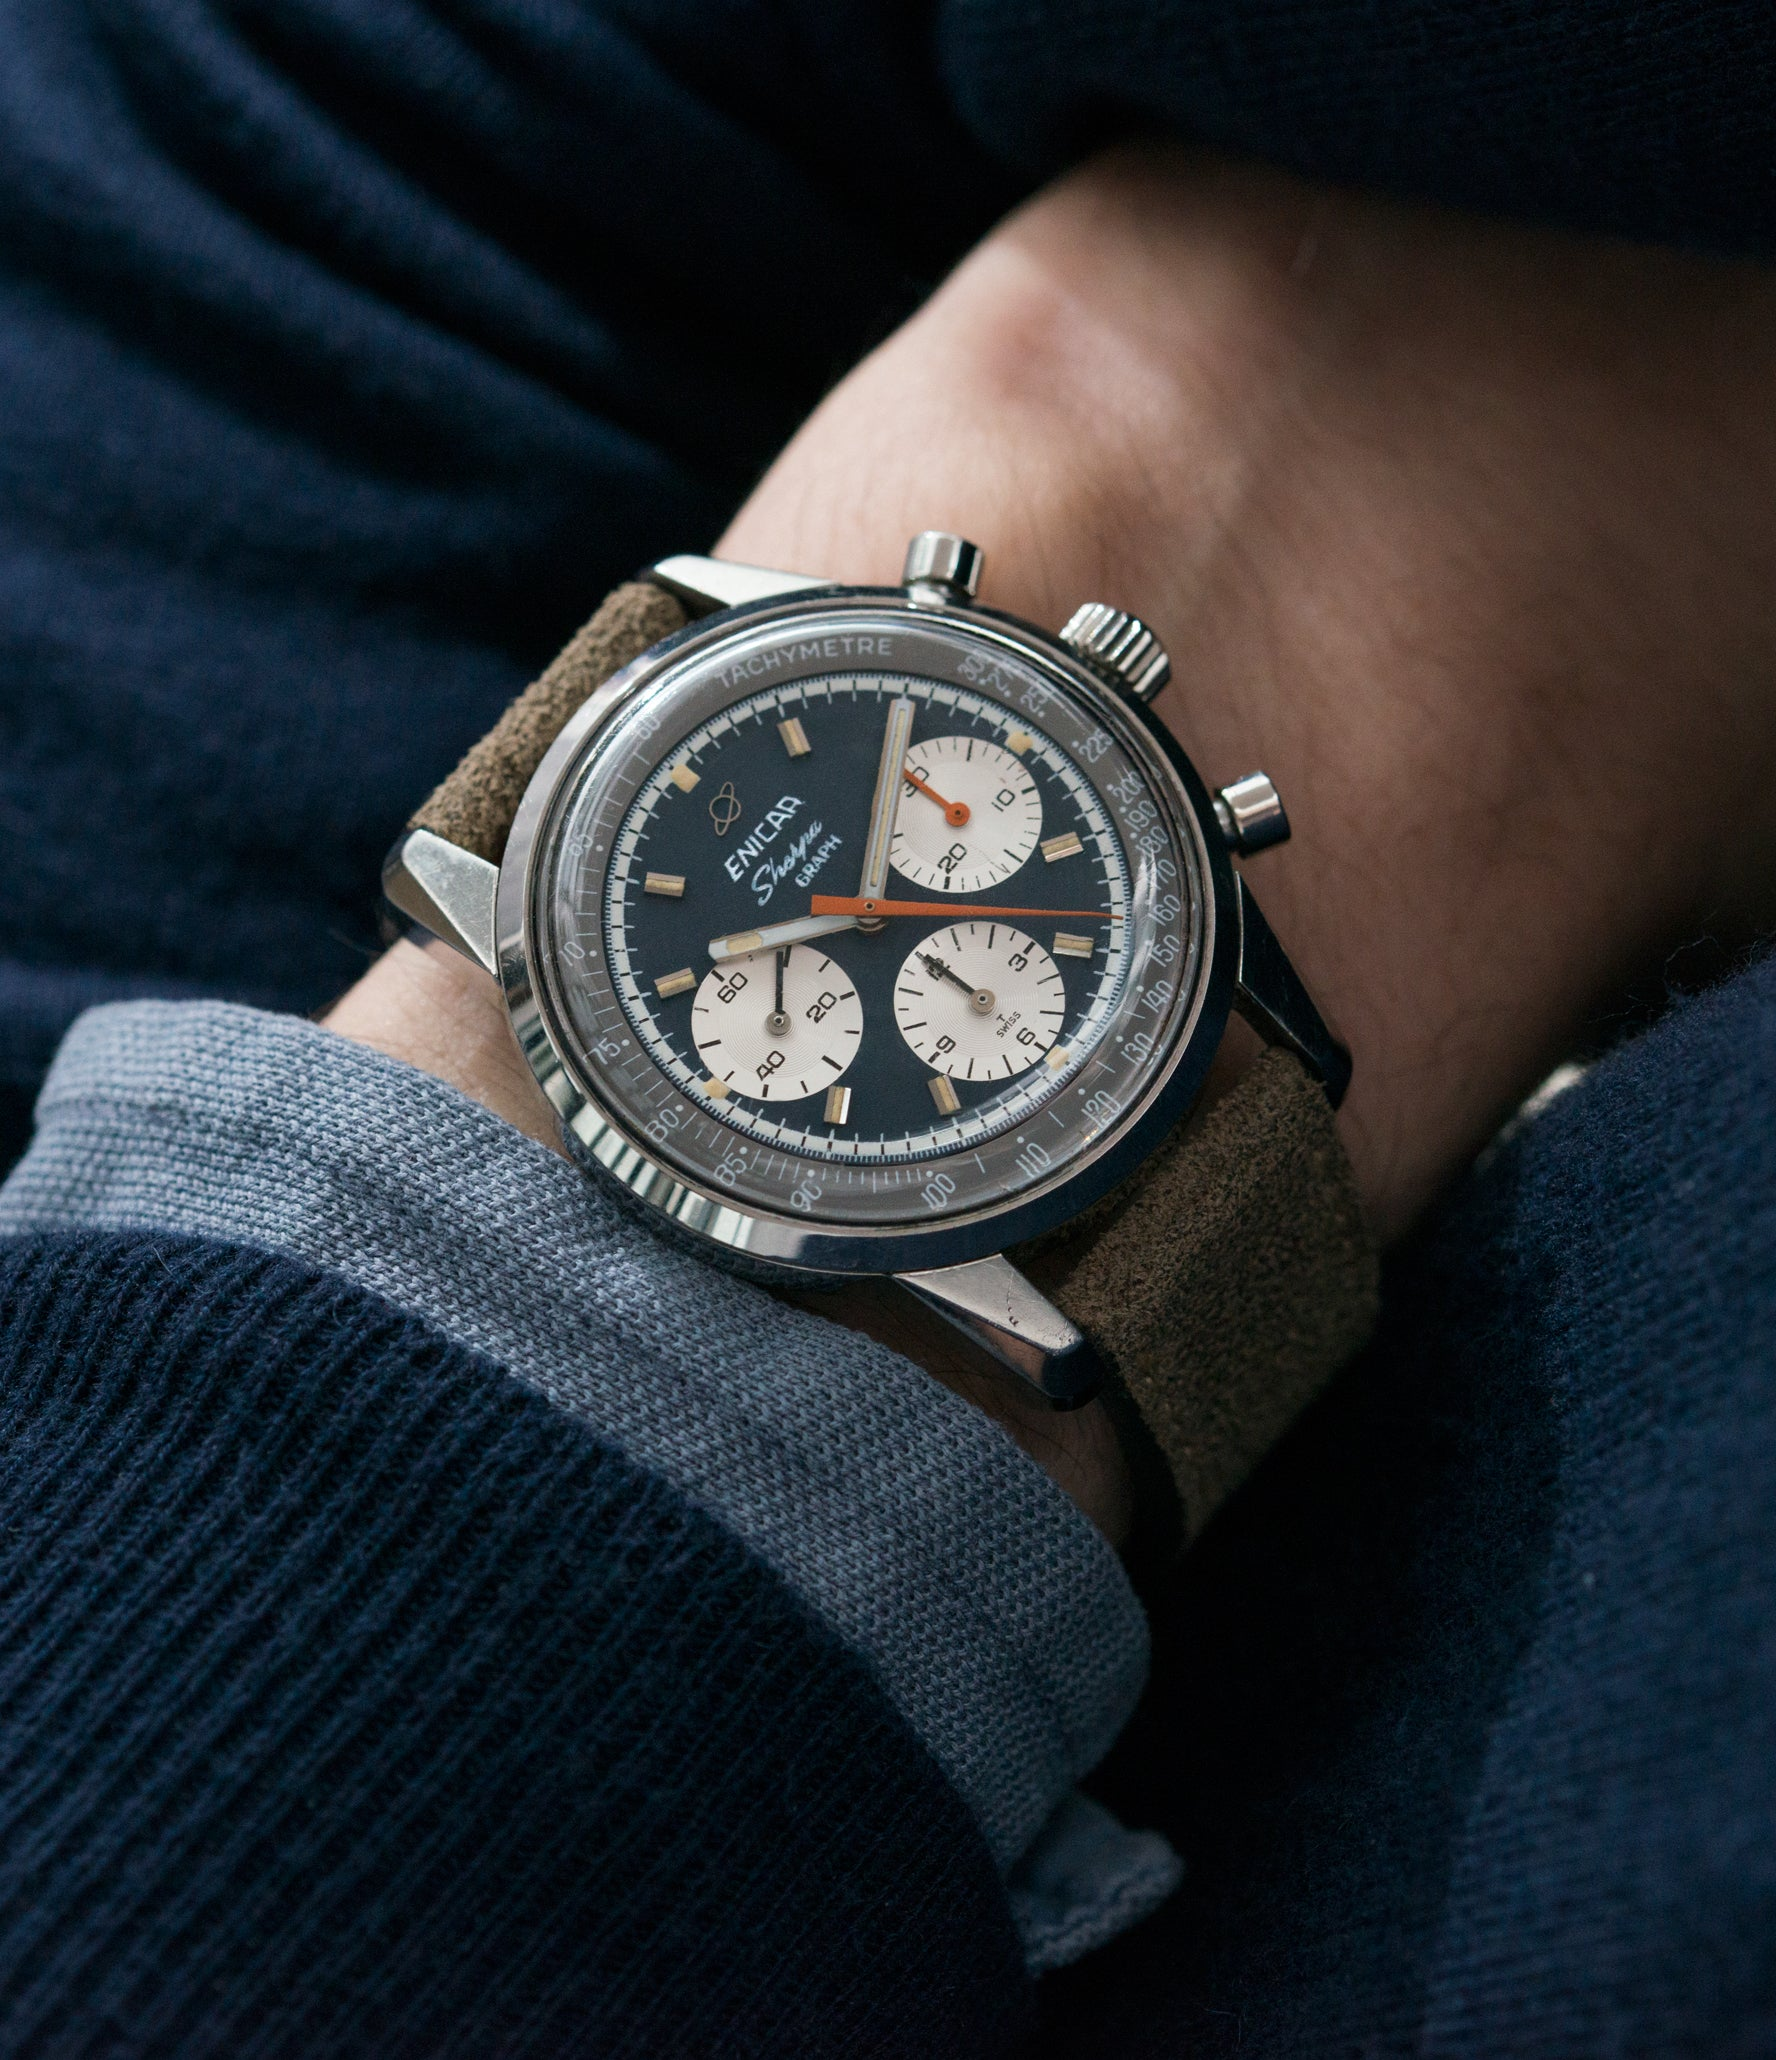 classic vintage sport watch Jim Clark Mark IV Enicar Sherpa Graph 300 Ref. 072-02-01 steel chronograph sport racing watch for sale online at A Collected Man London UK vintage watch specialist